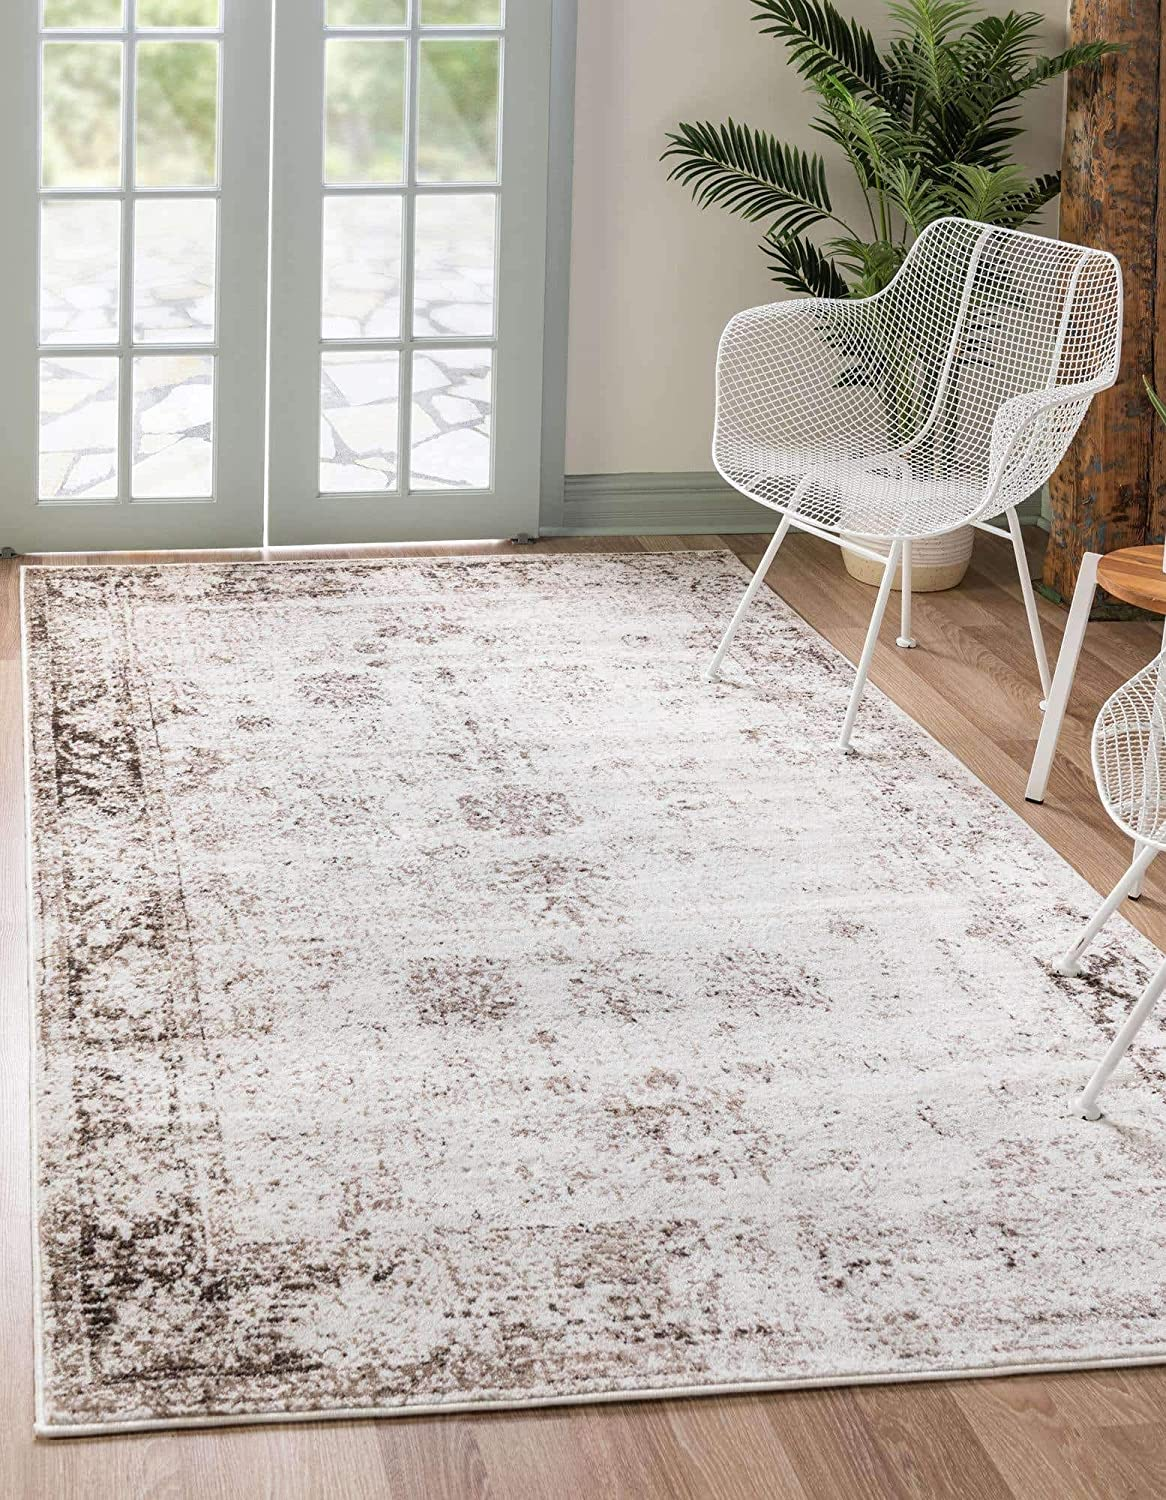 Unique Loom Sofia Traditional Area Rug_SOF001, 6 x 9 Feet, Ivory/Brown